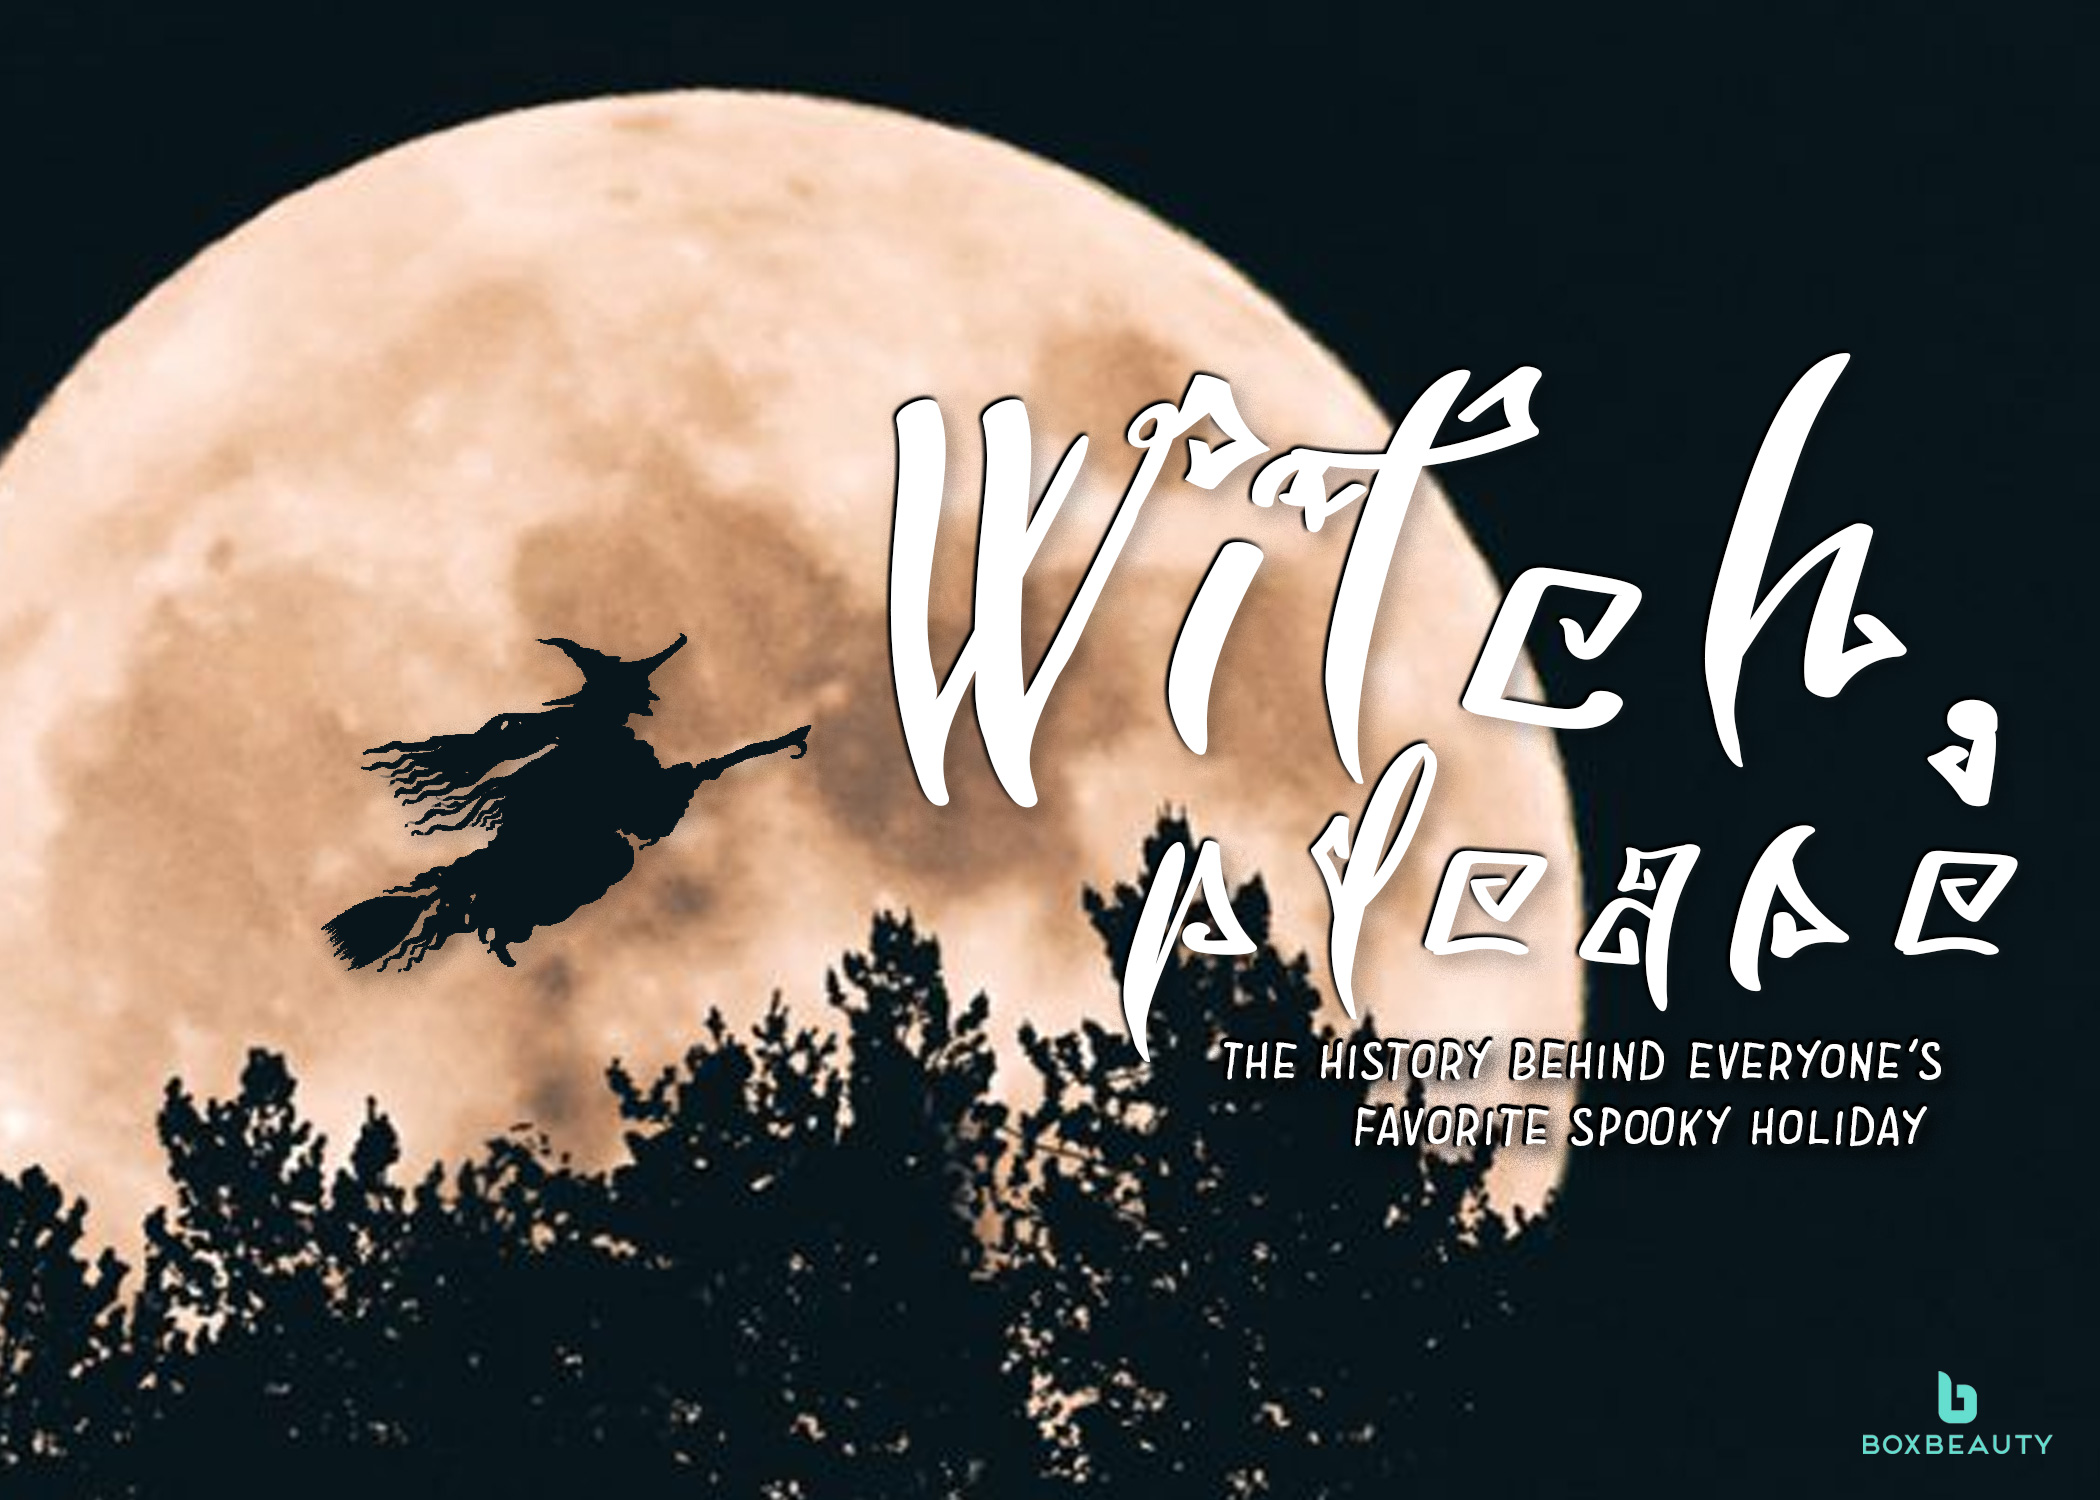 Witch Please: The history behind everyone's favorite spooky holiday